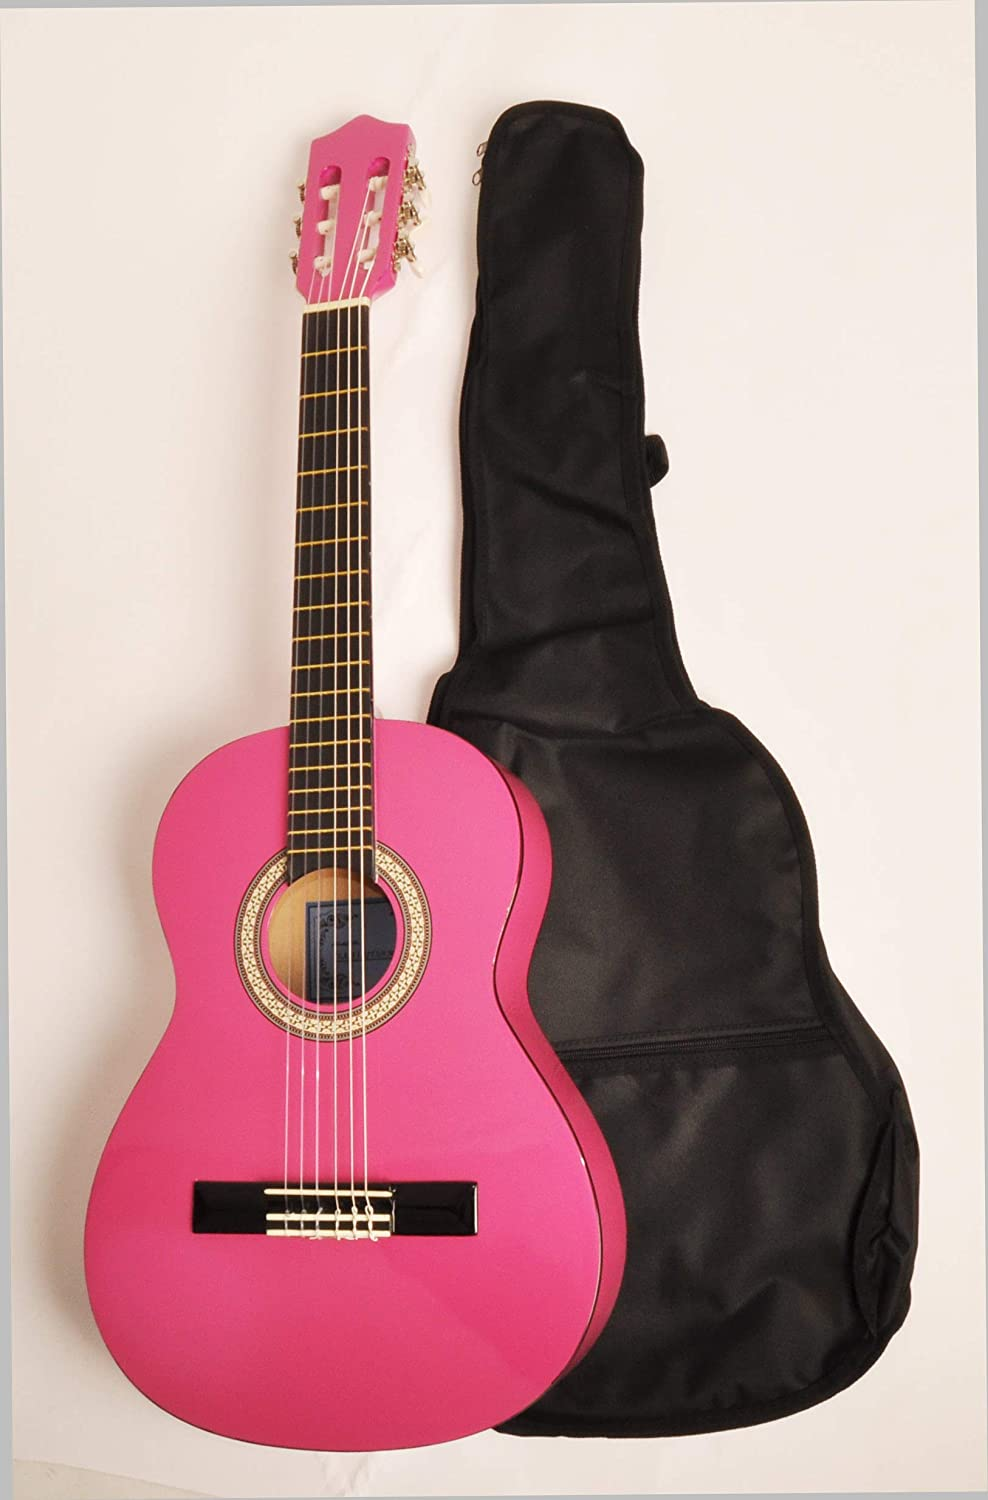 Beginner Left Handed Classical Acoustic Guitar 3/4 Size (36″) Pink OMEGA CLASS 3/4 MPN LH